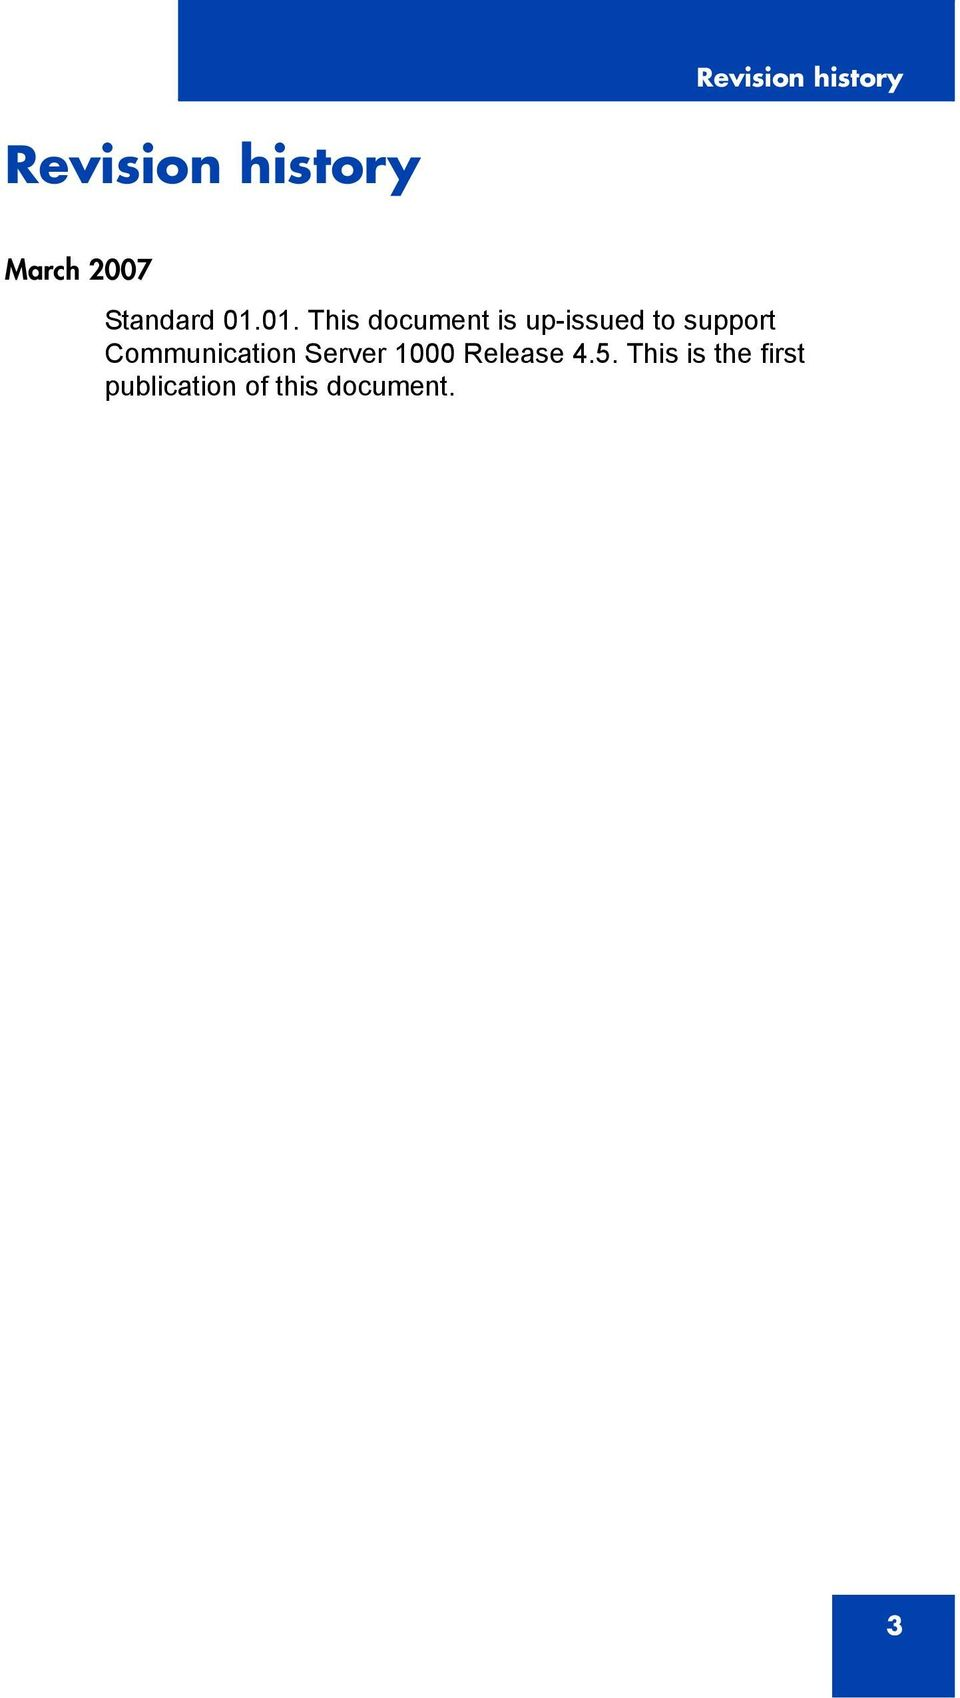 01. This document is up-issued to support